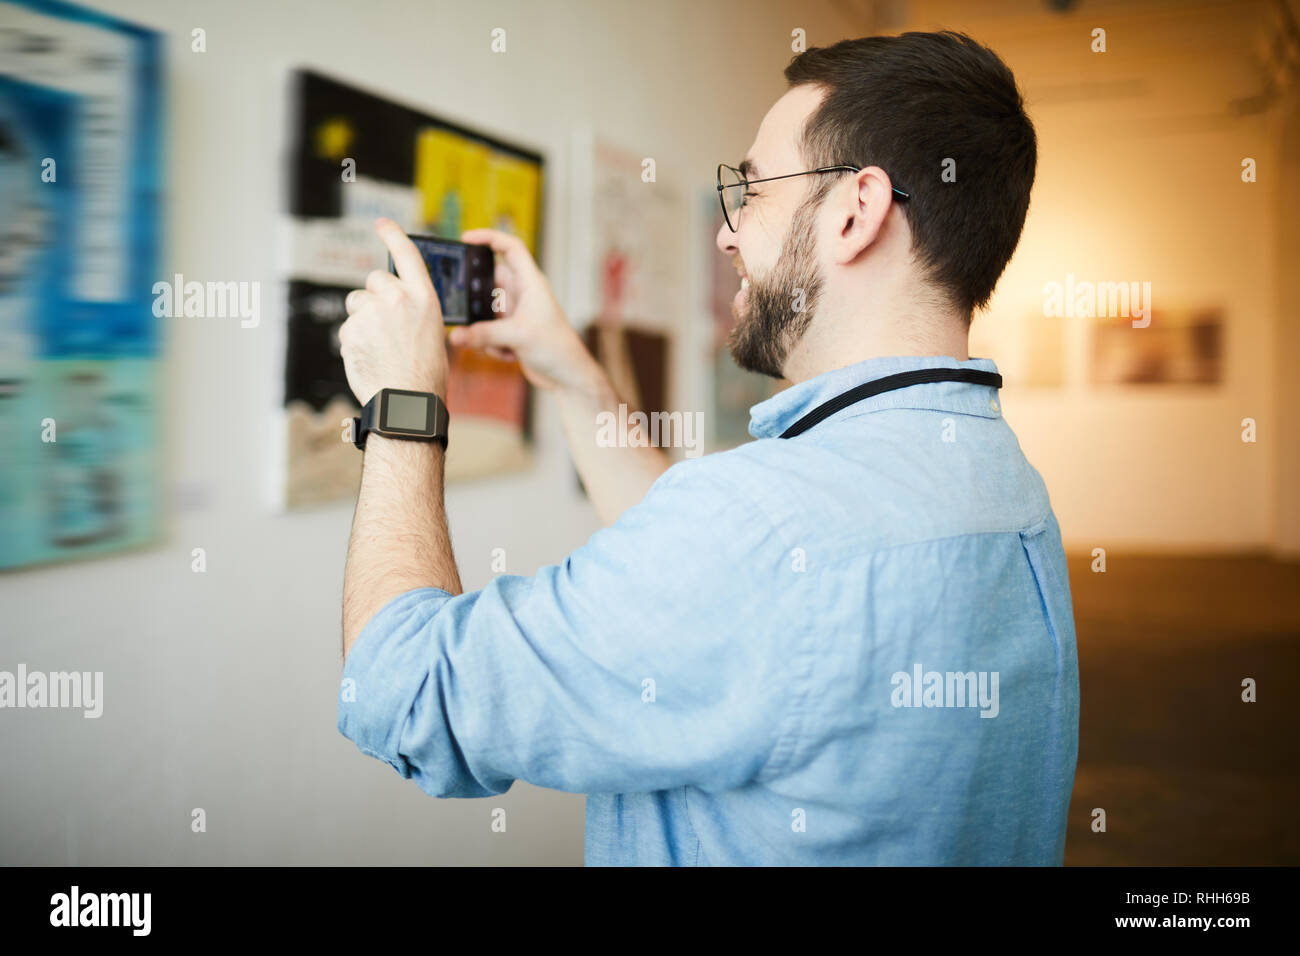 Museum Visitor Taking Photo of Painting - Stock Image